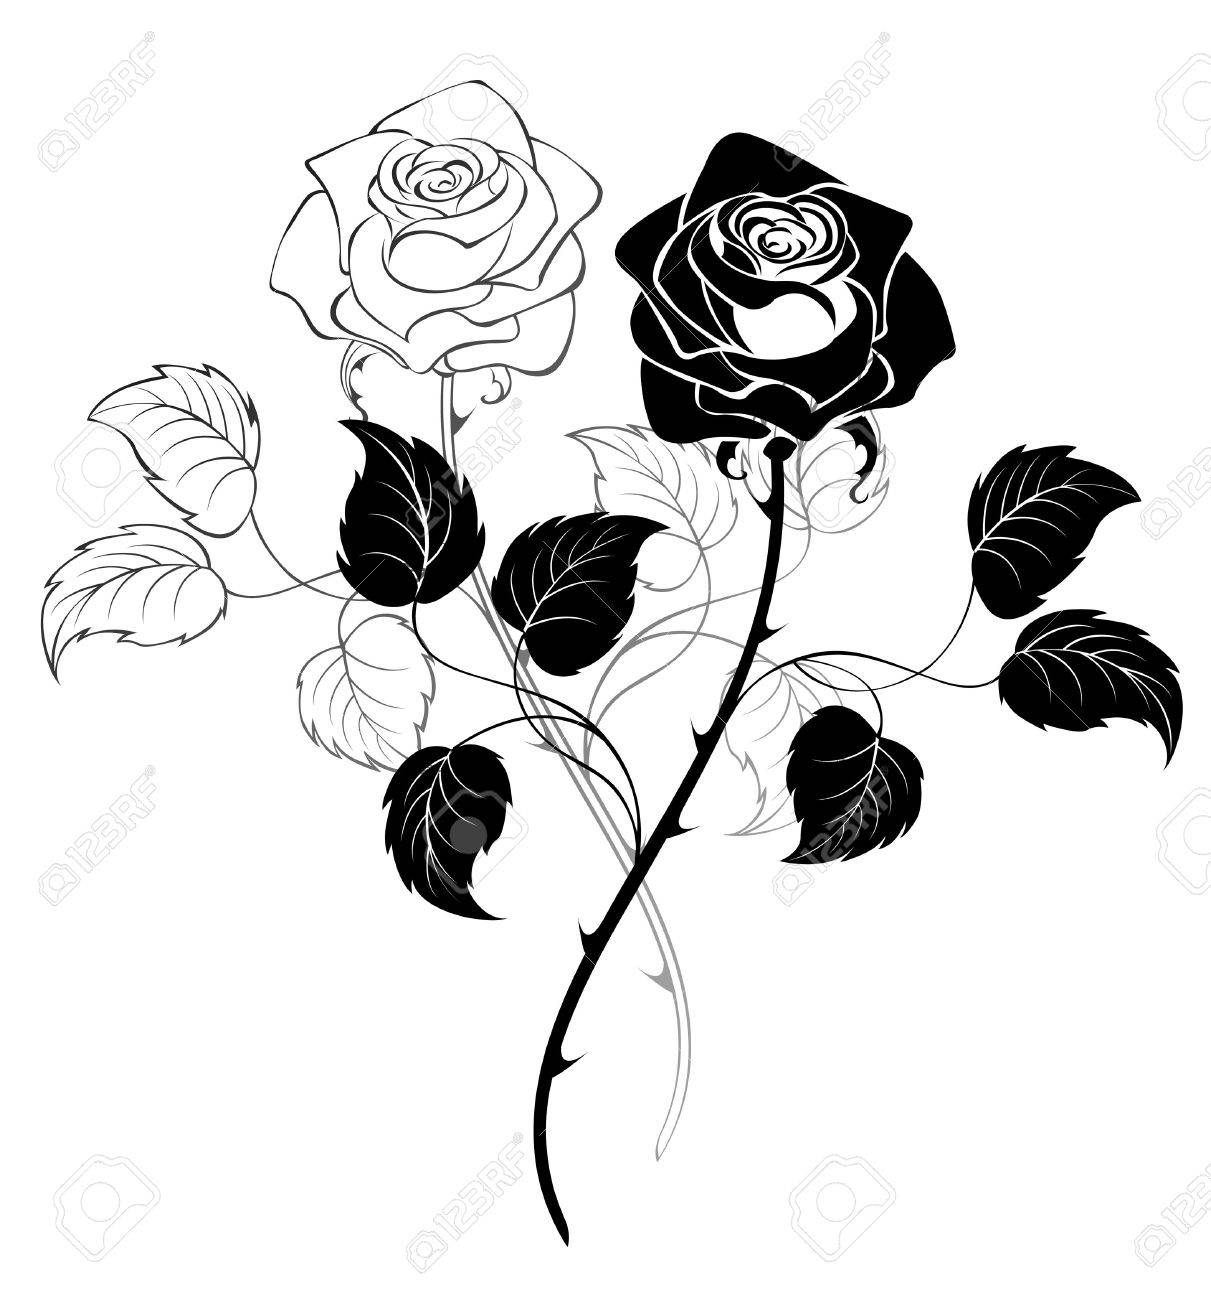 Two Artistically Drawn Roses On A White Background Royalty Free ...